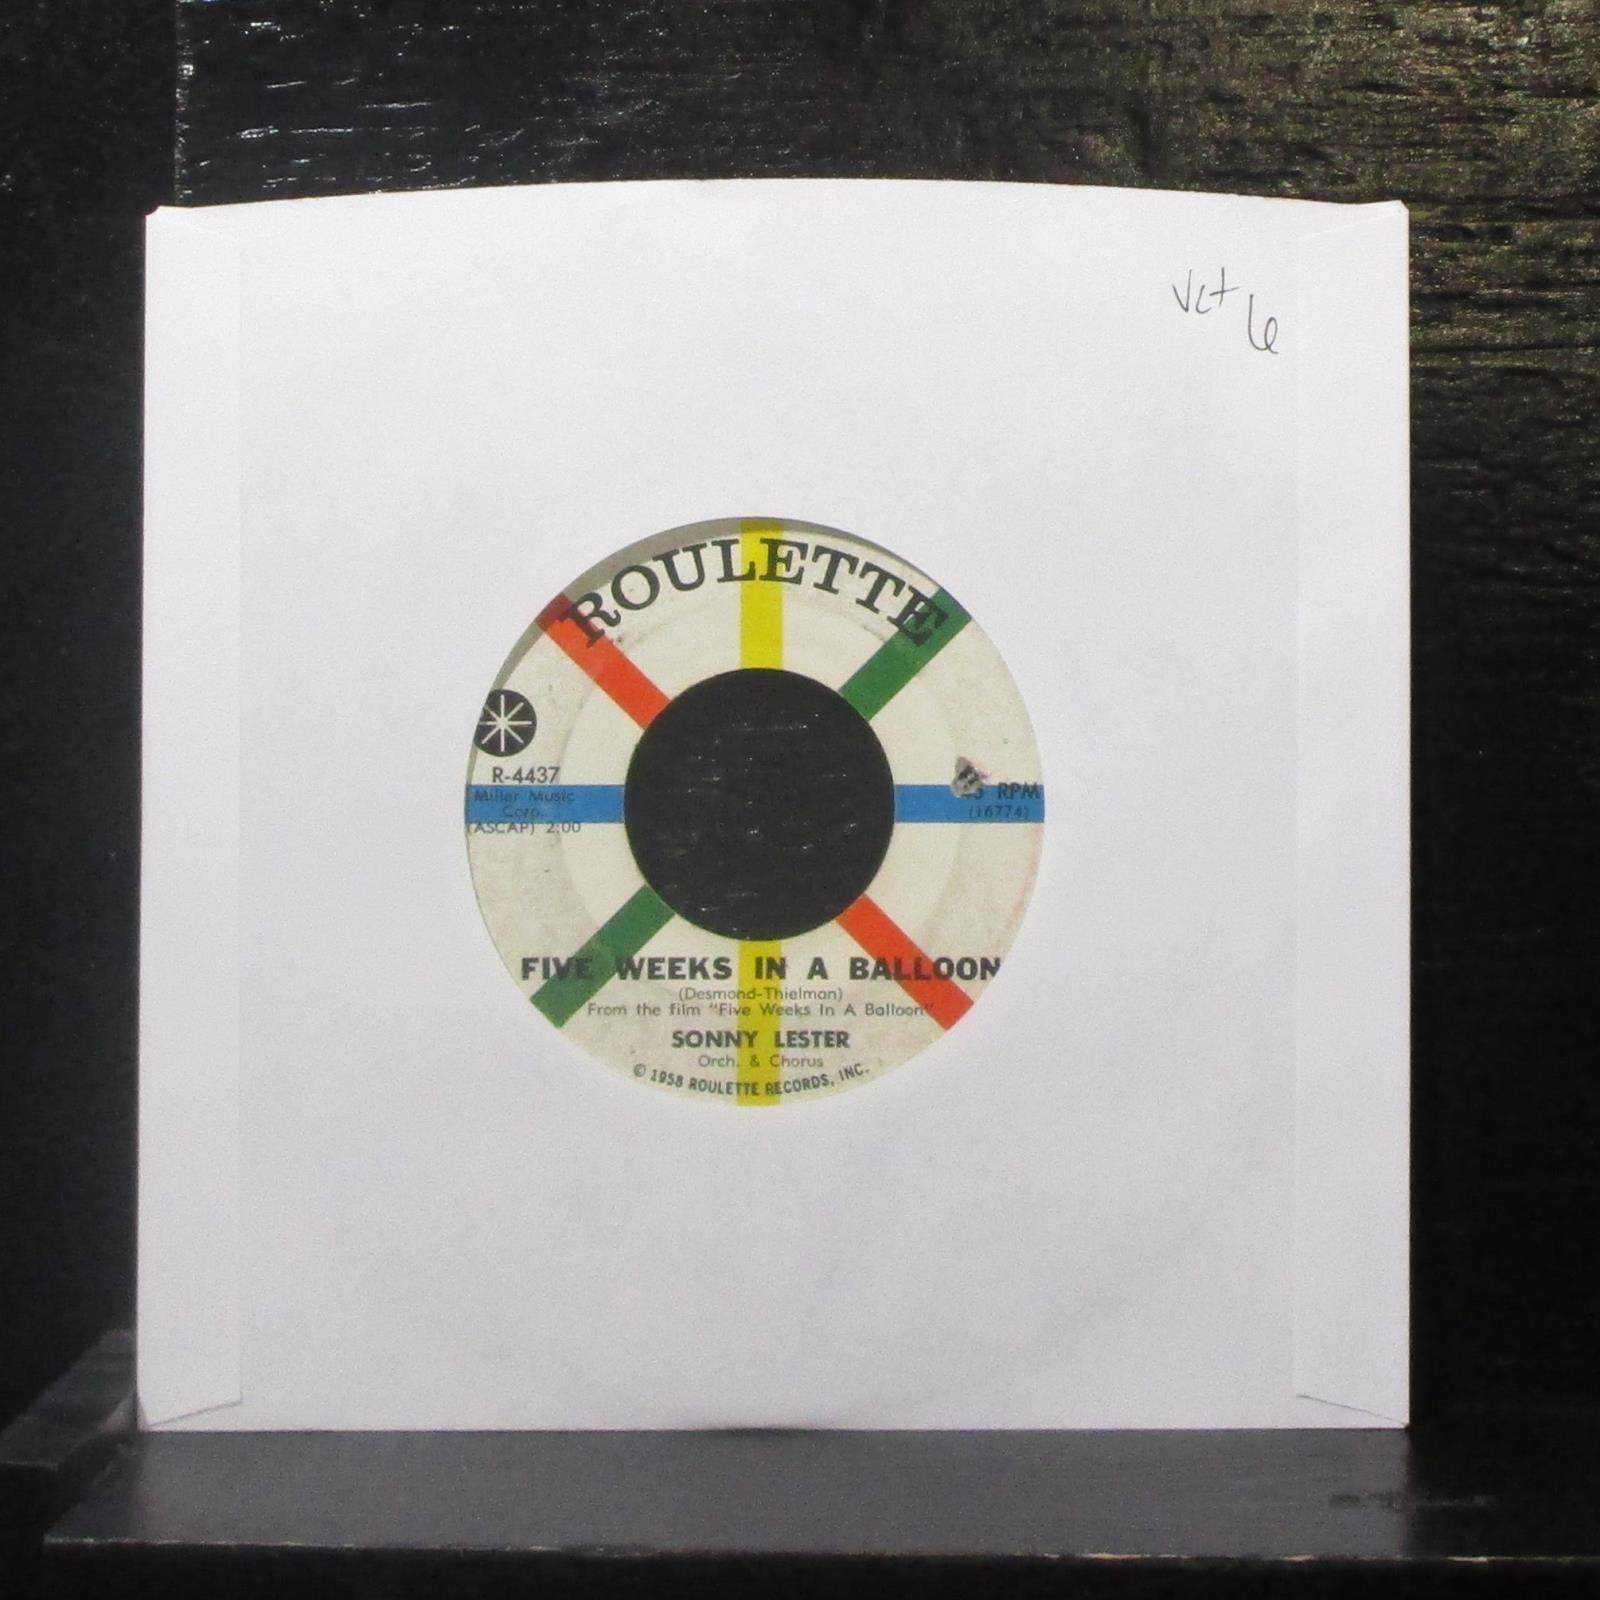 "Sonny Lester - Five Weeks In A Balloon / Summer 7"" VG+ Vinyl 45 Roulette R-4437"